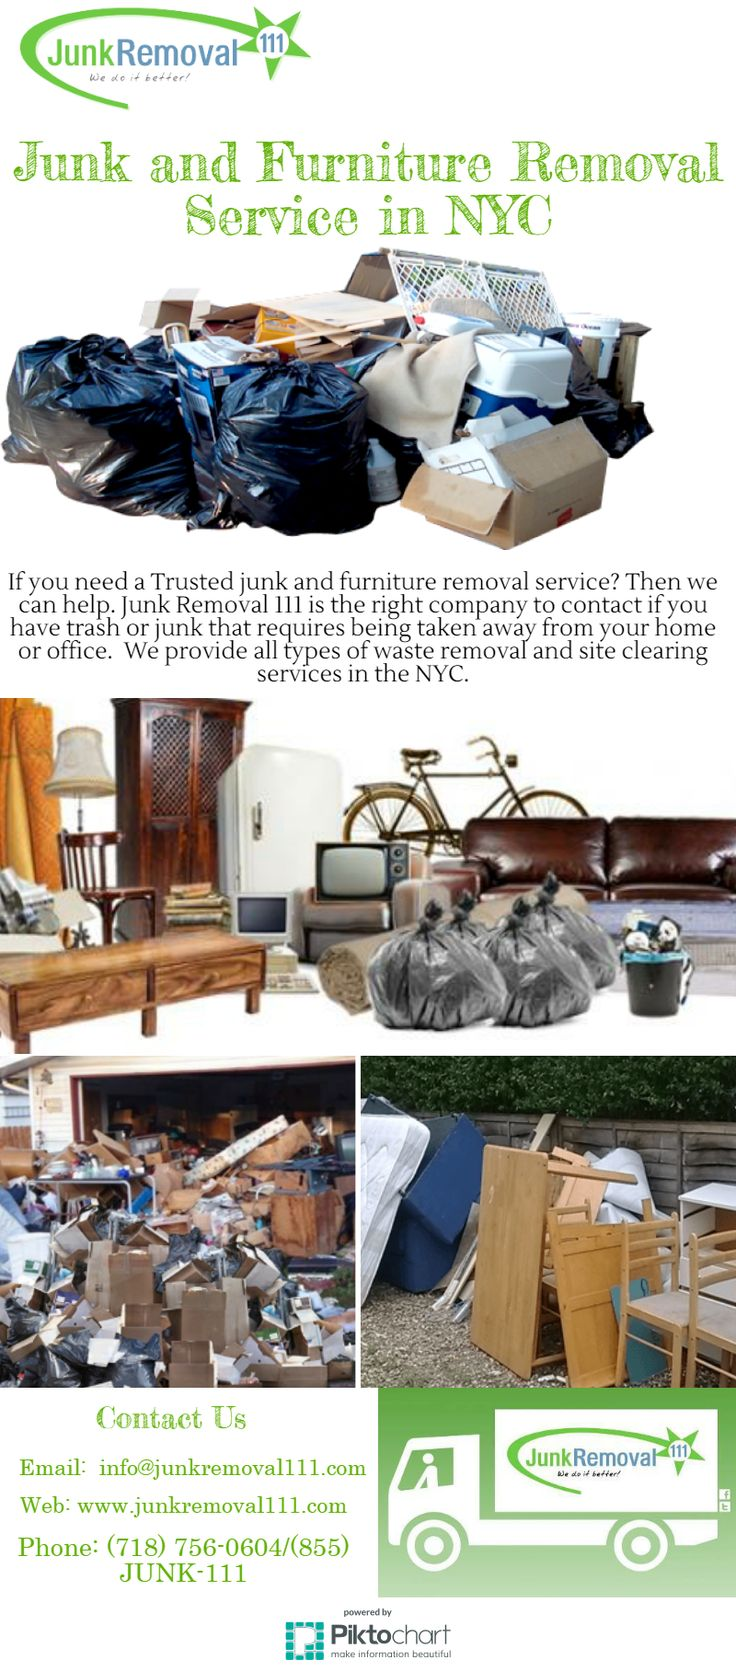 If you need a Trusted junk and furniture removal service? Then we can help. Junk Removal 111 is the right company to contact if you have trash or junk that requires being taken away from your home or office.  We provide all types of waste removal and site clearing services in the NYC. Visit at https://magic.piktochart.com/output/22797632-junk-and-furniture-removal-service-in-nyc